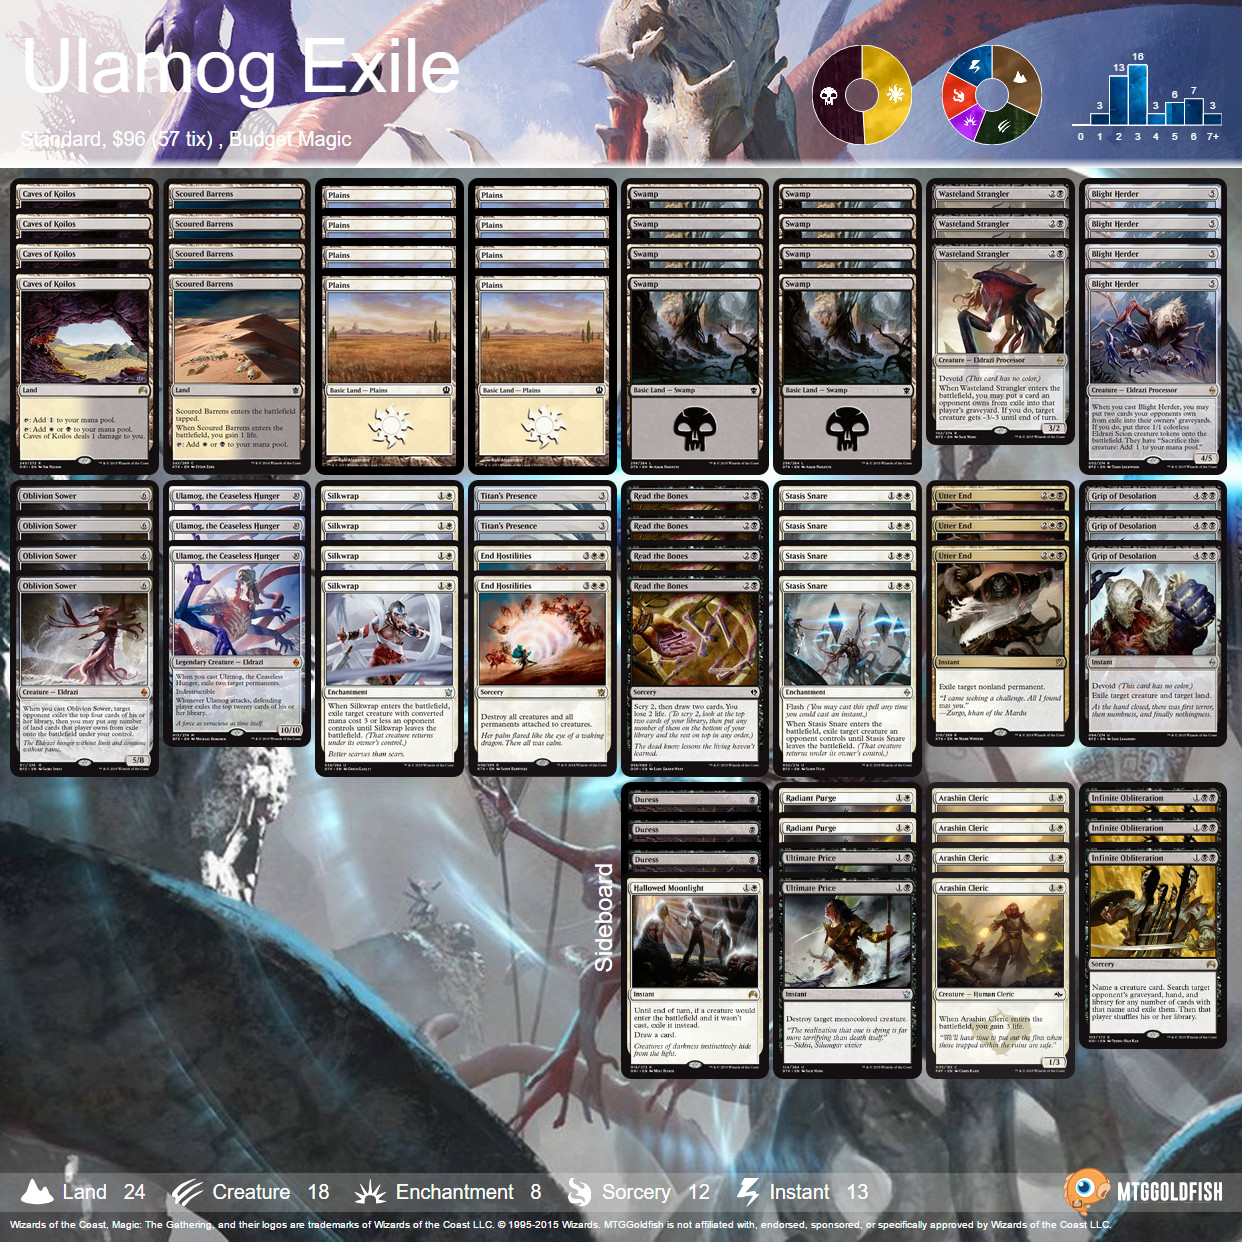 ... Magic to explore the new Standard. First up, Ulamog Exile! Read more